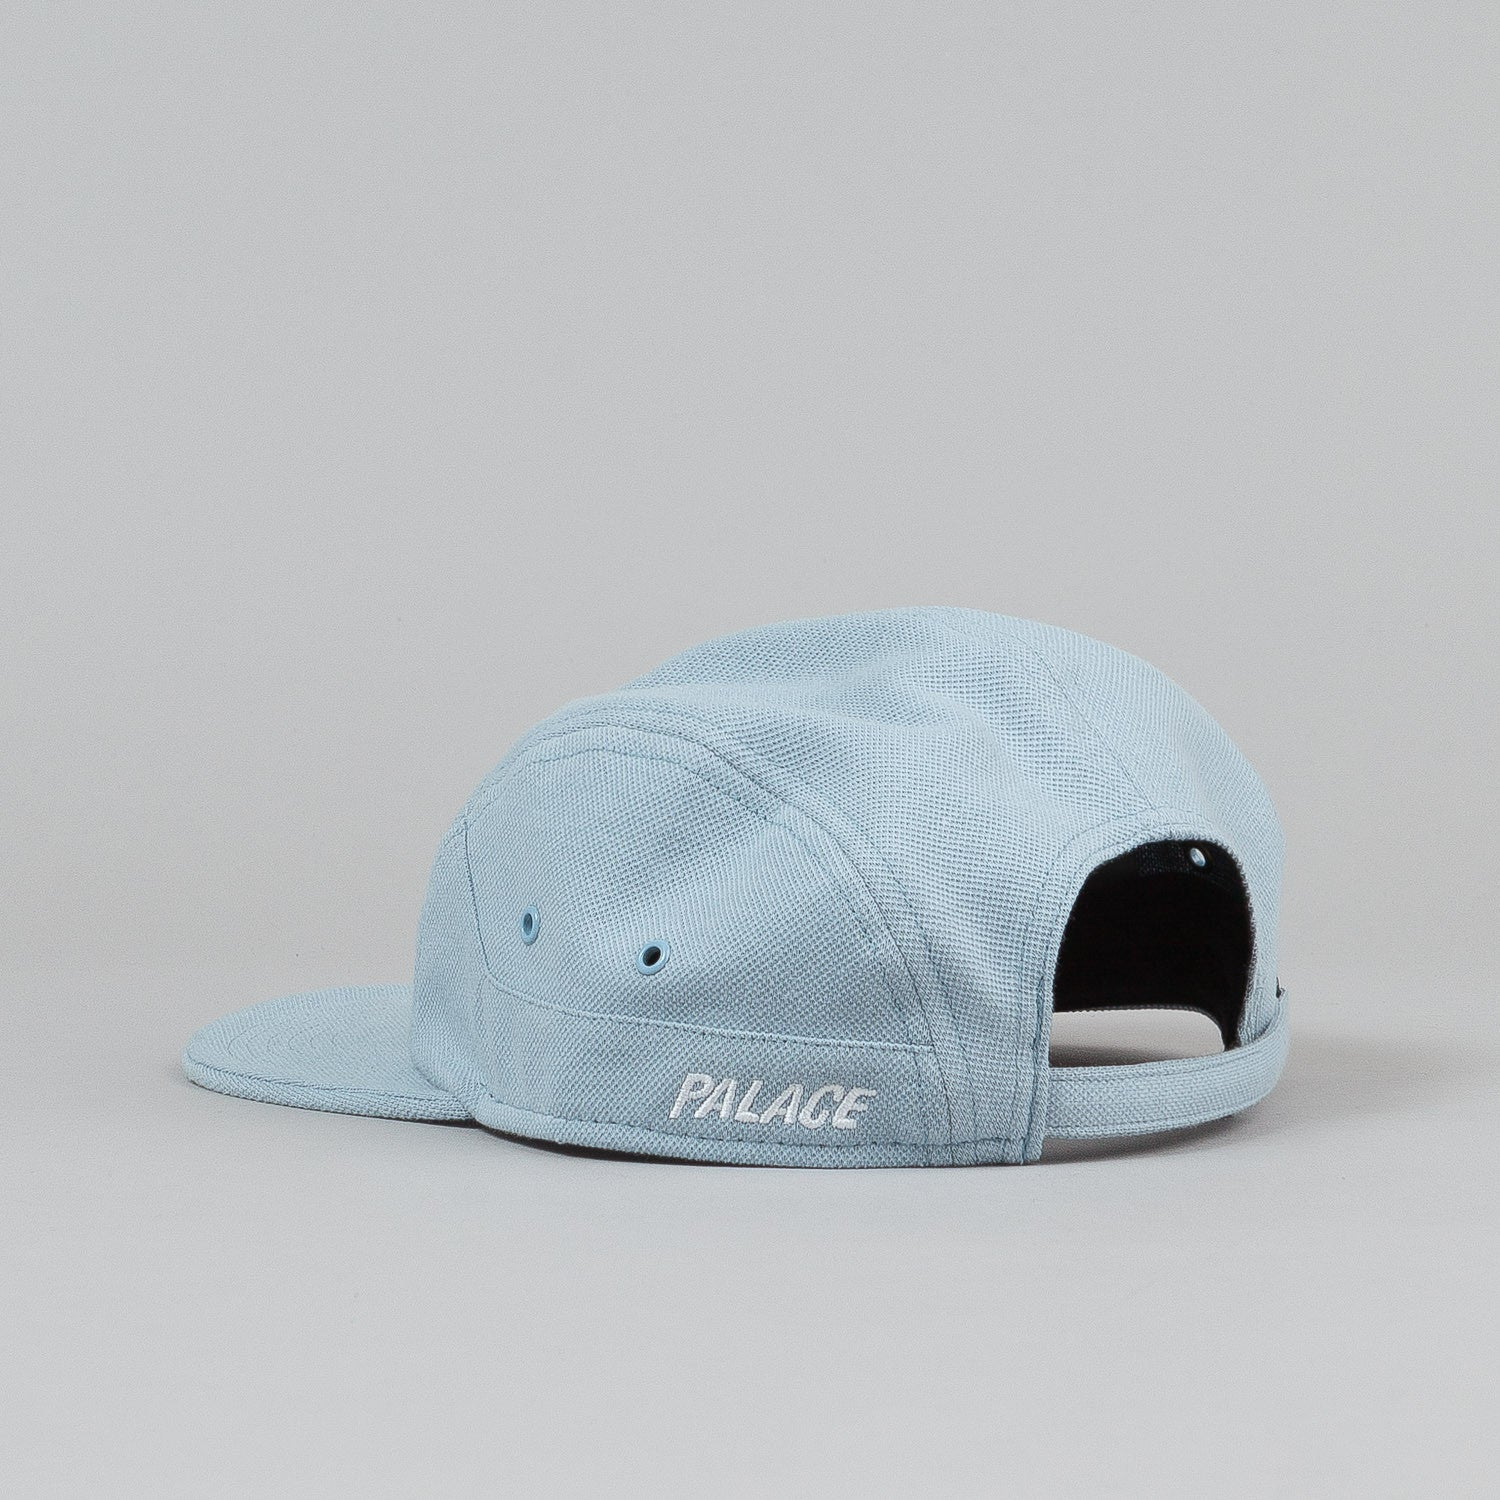 Palace 7 Panel Cap - Baby Blue Pique